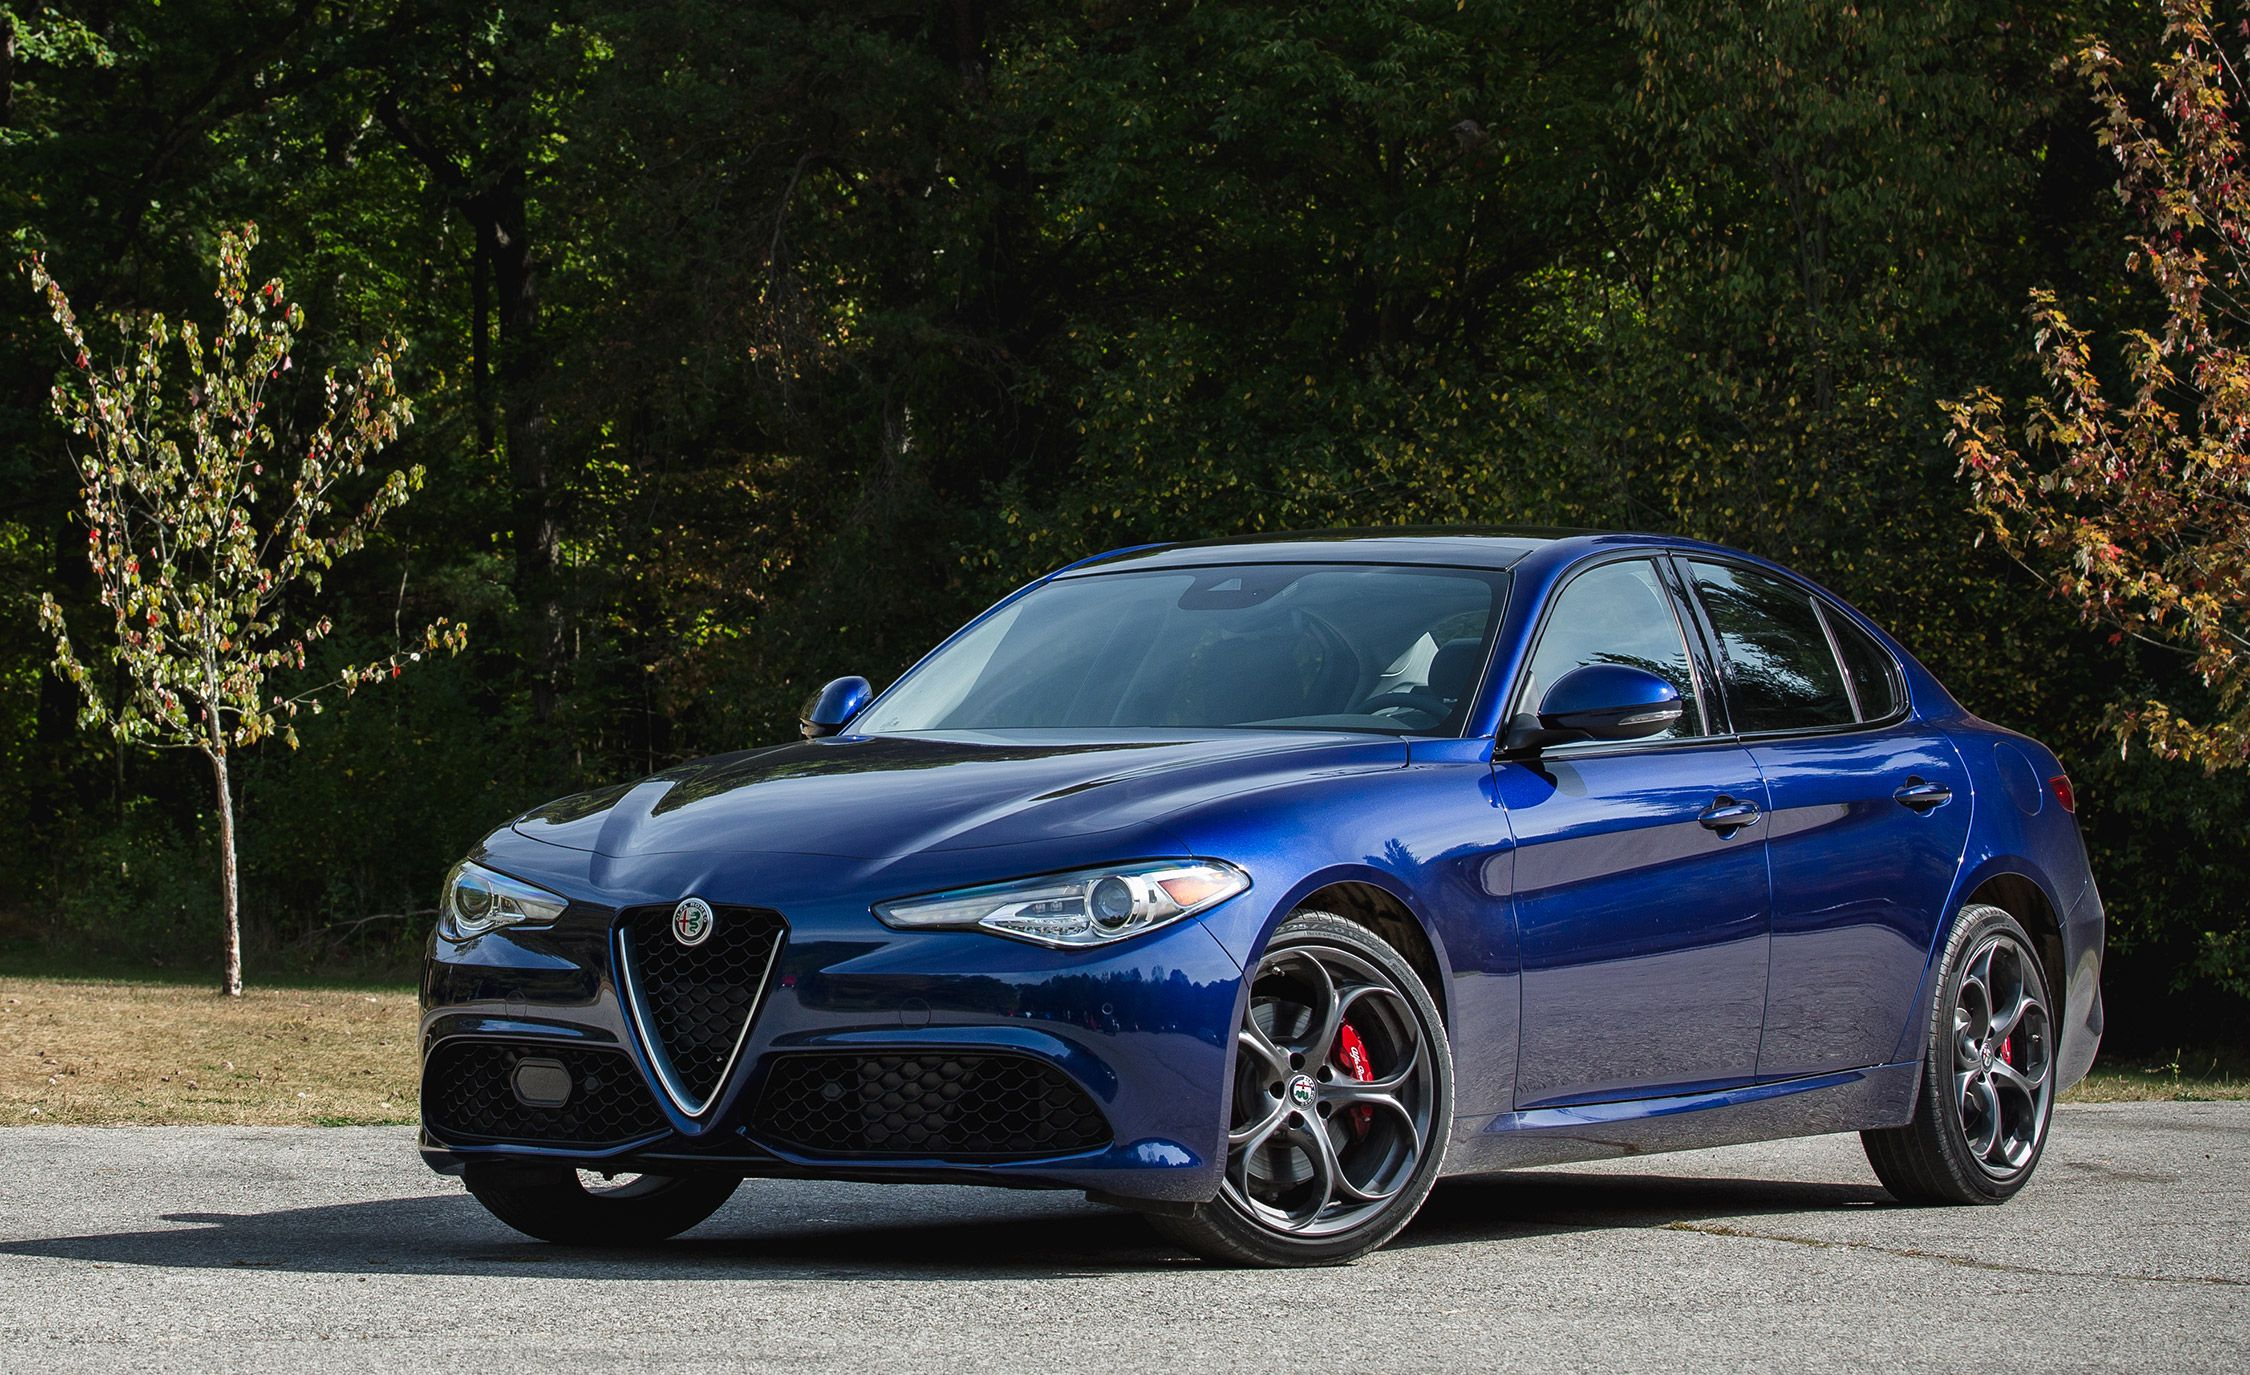 2018 Alfa Romeo Giulia Quadrifoglio 10K Mile Update Awaiting Repairs